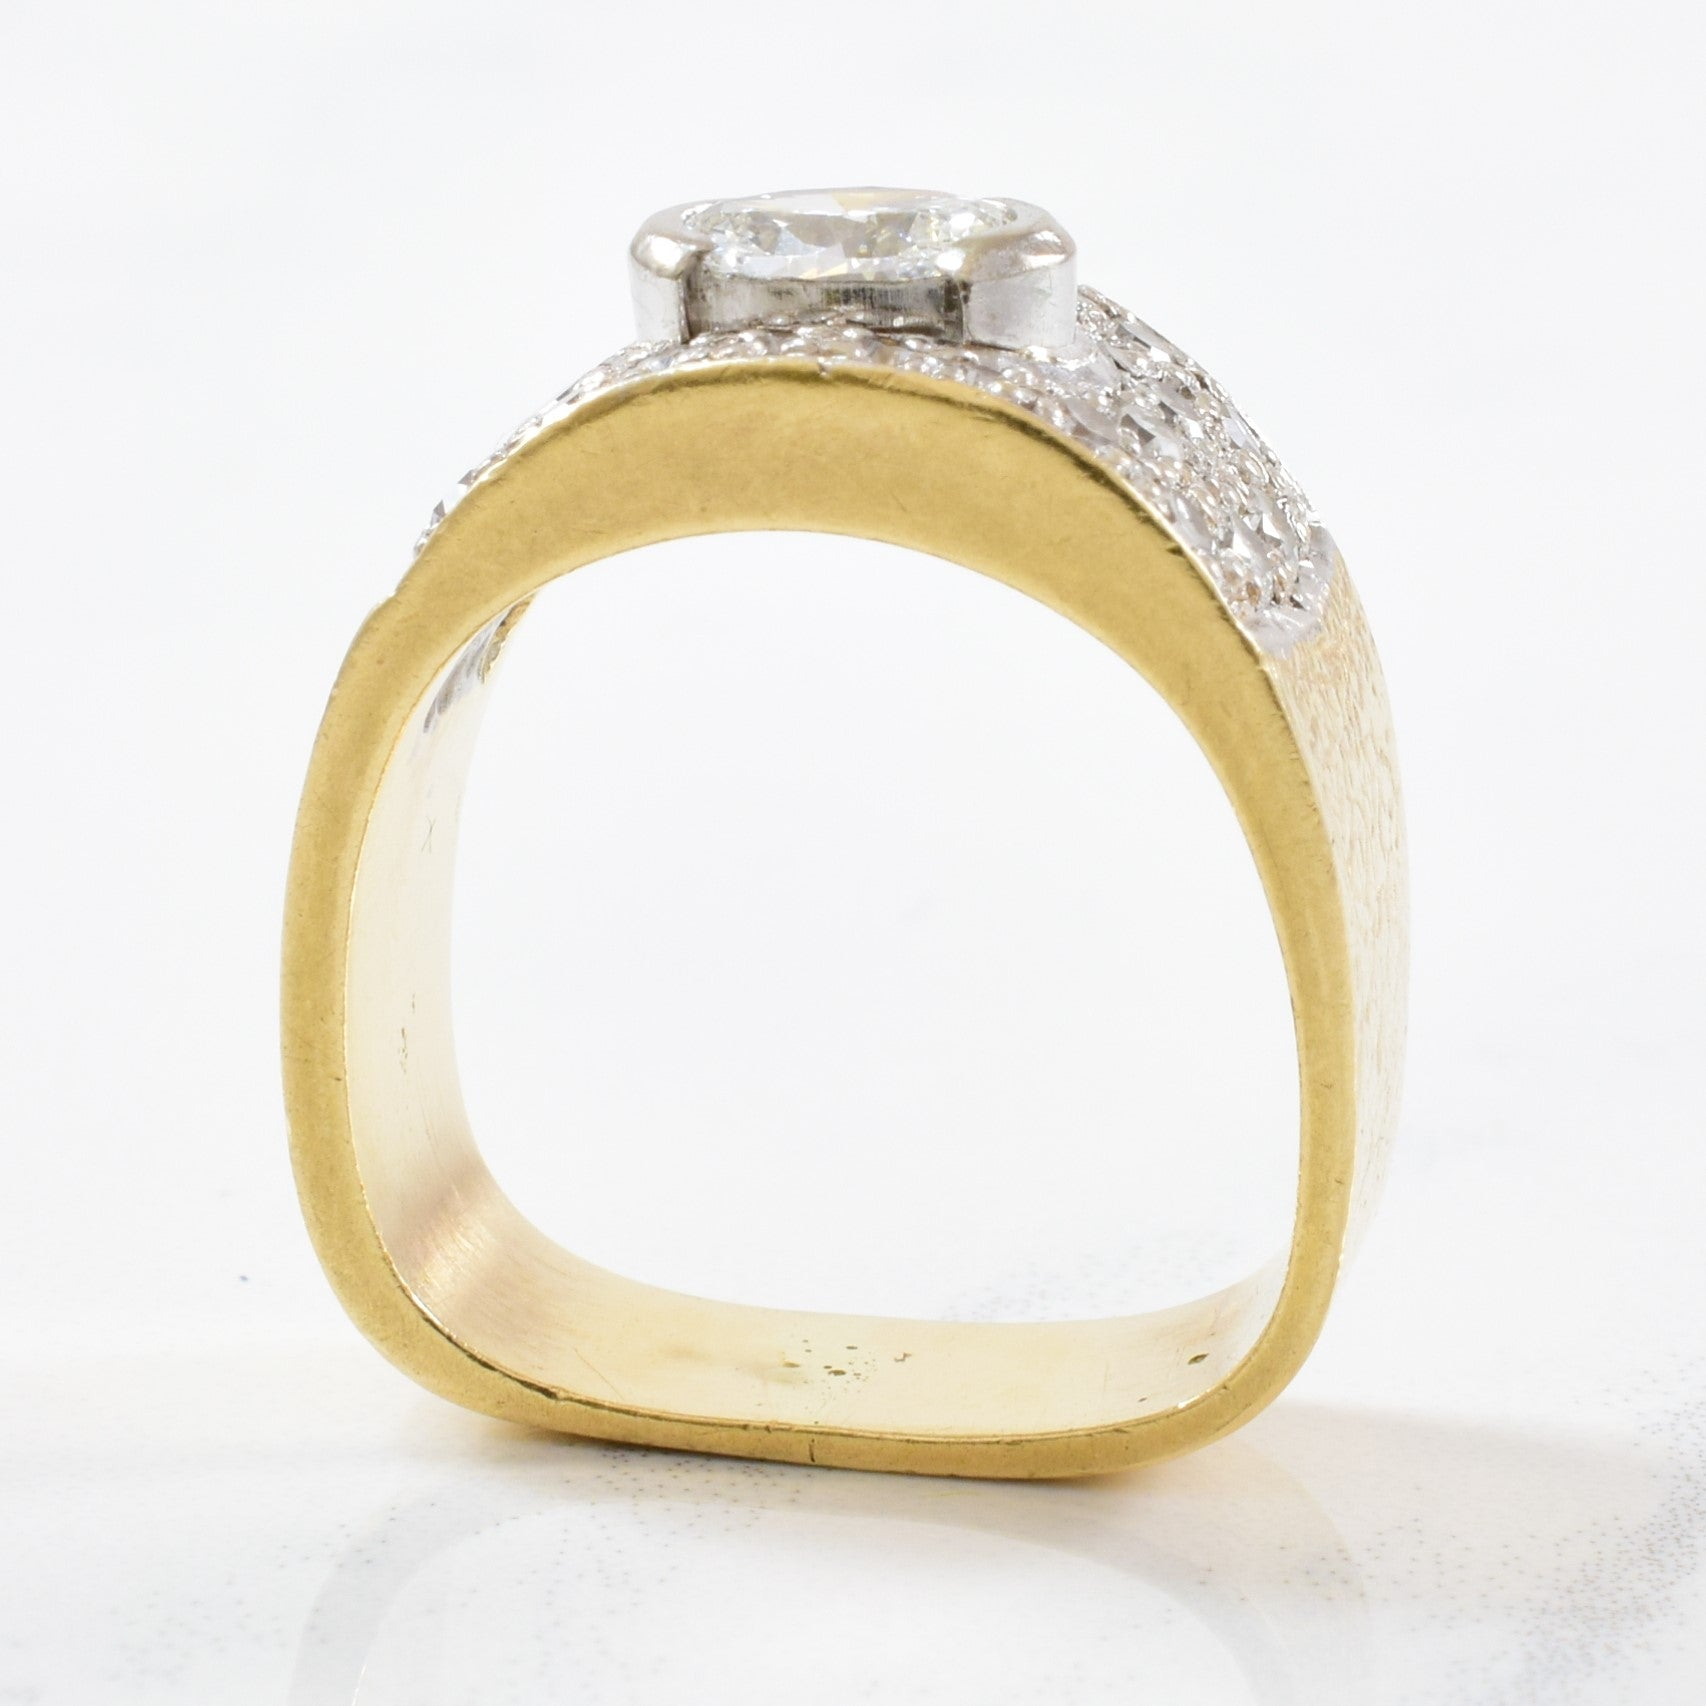 Bezel Set Oval Diamond Ring | 0.80ctw | SZ 4.5 |